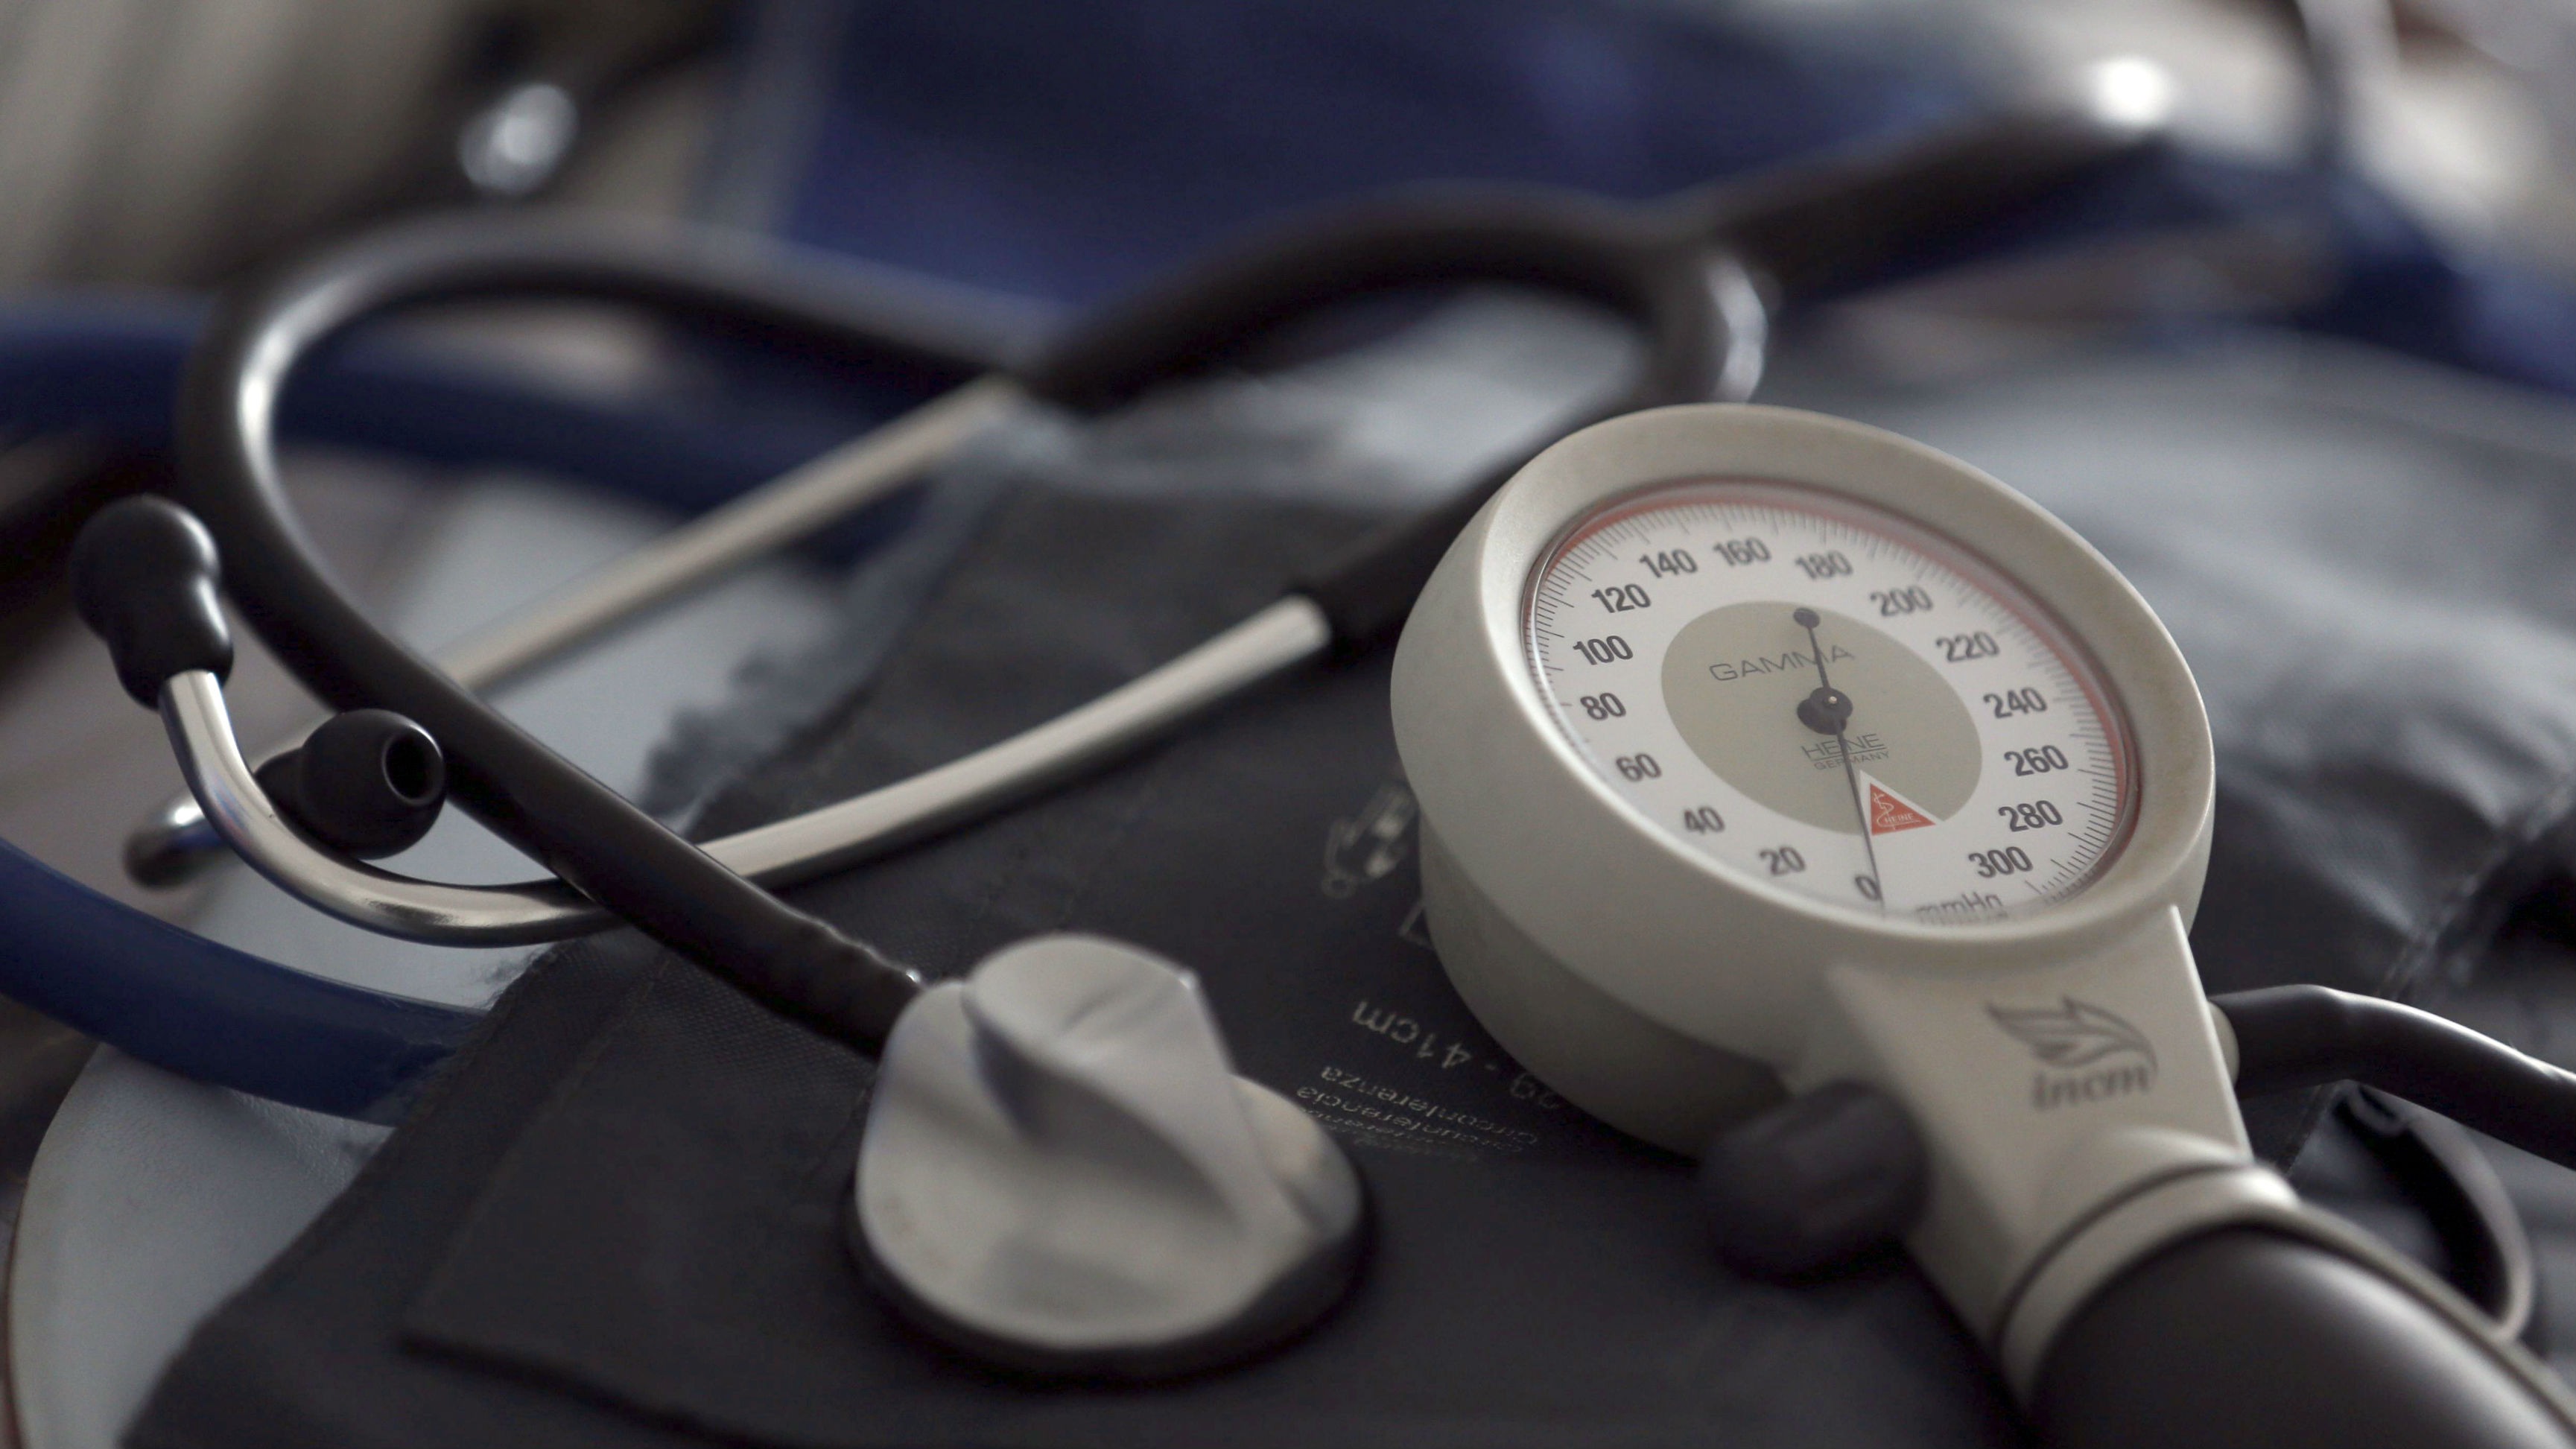 a stethoscope on a table against a blue blood pressure cuff.